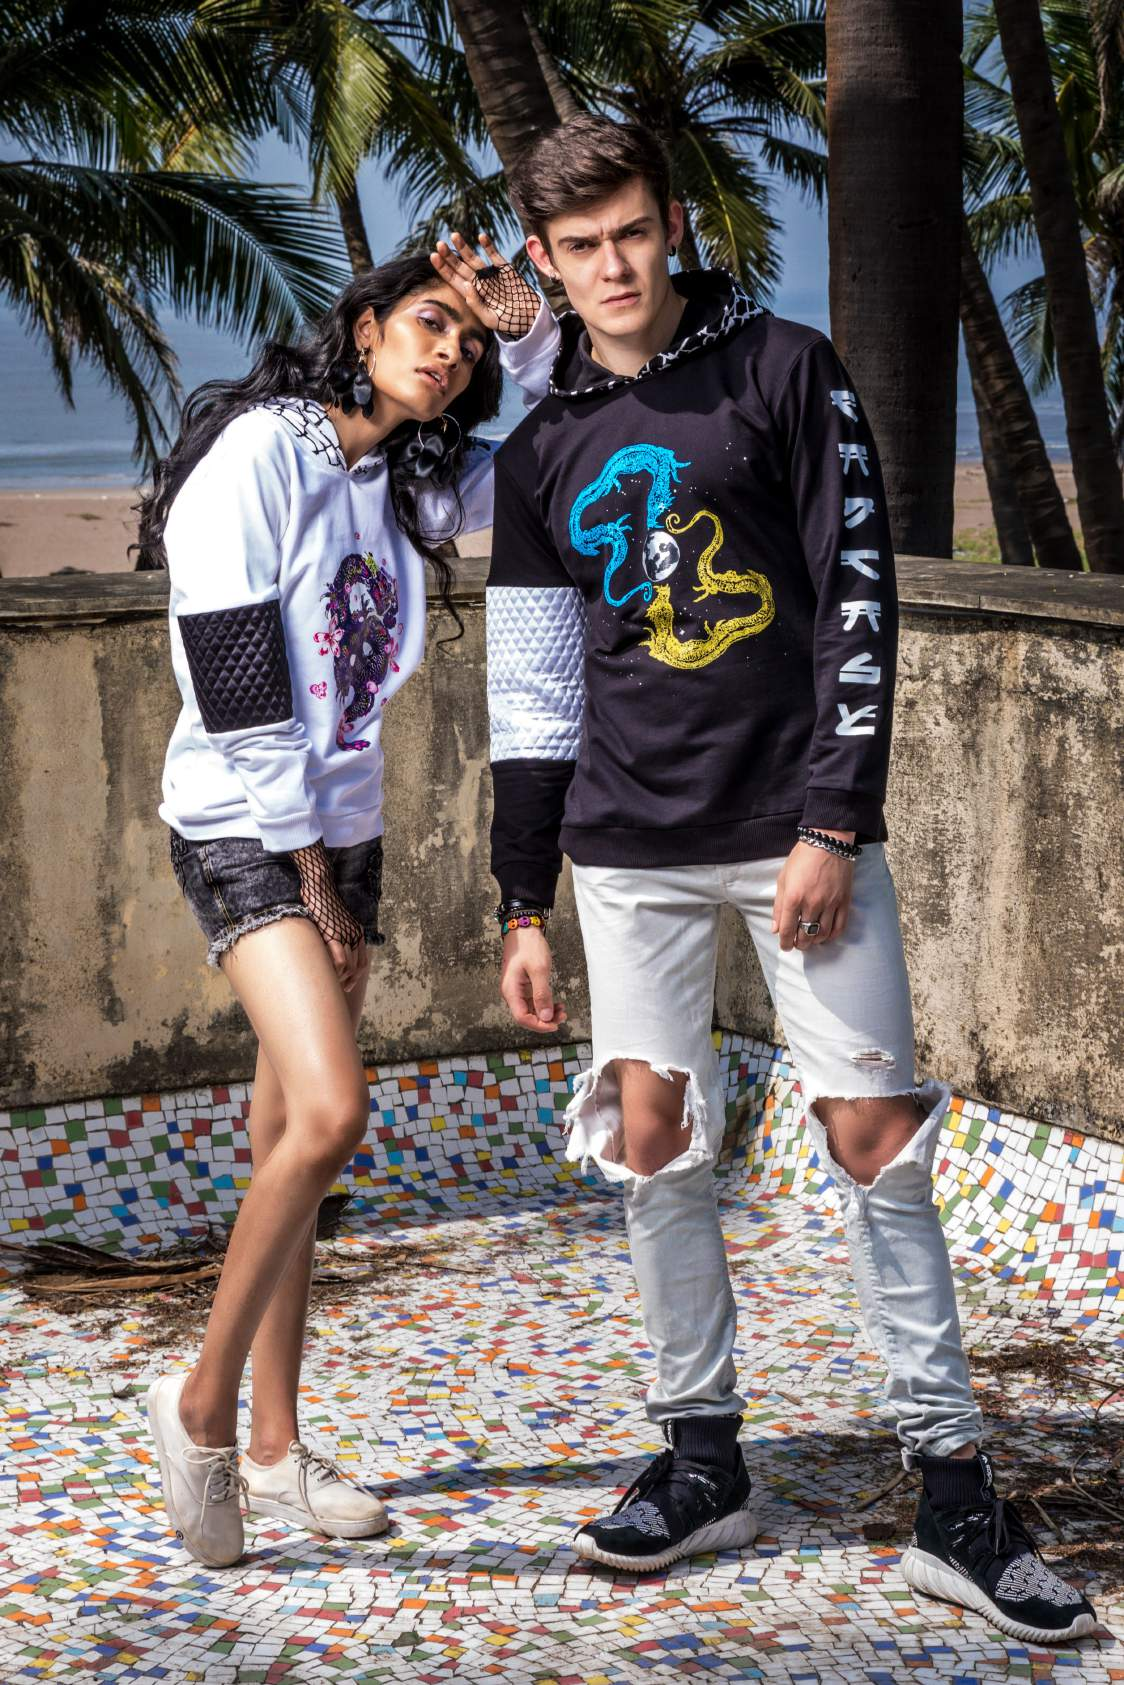 A guy wearing a black hoodie, knee torn denim and black shoes is standing with a girl wearing white hoodie with a dancing dragon printed on it with a pair of shorts and white shoes.